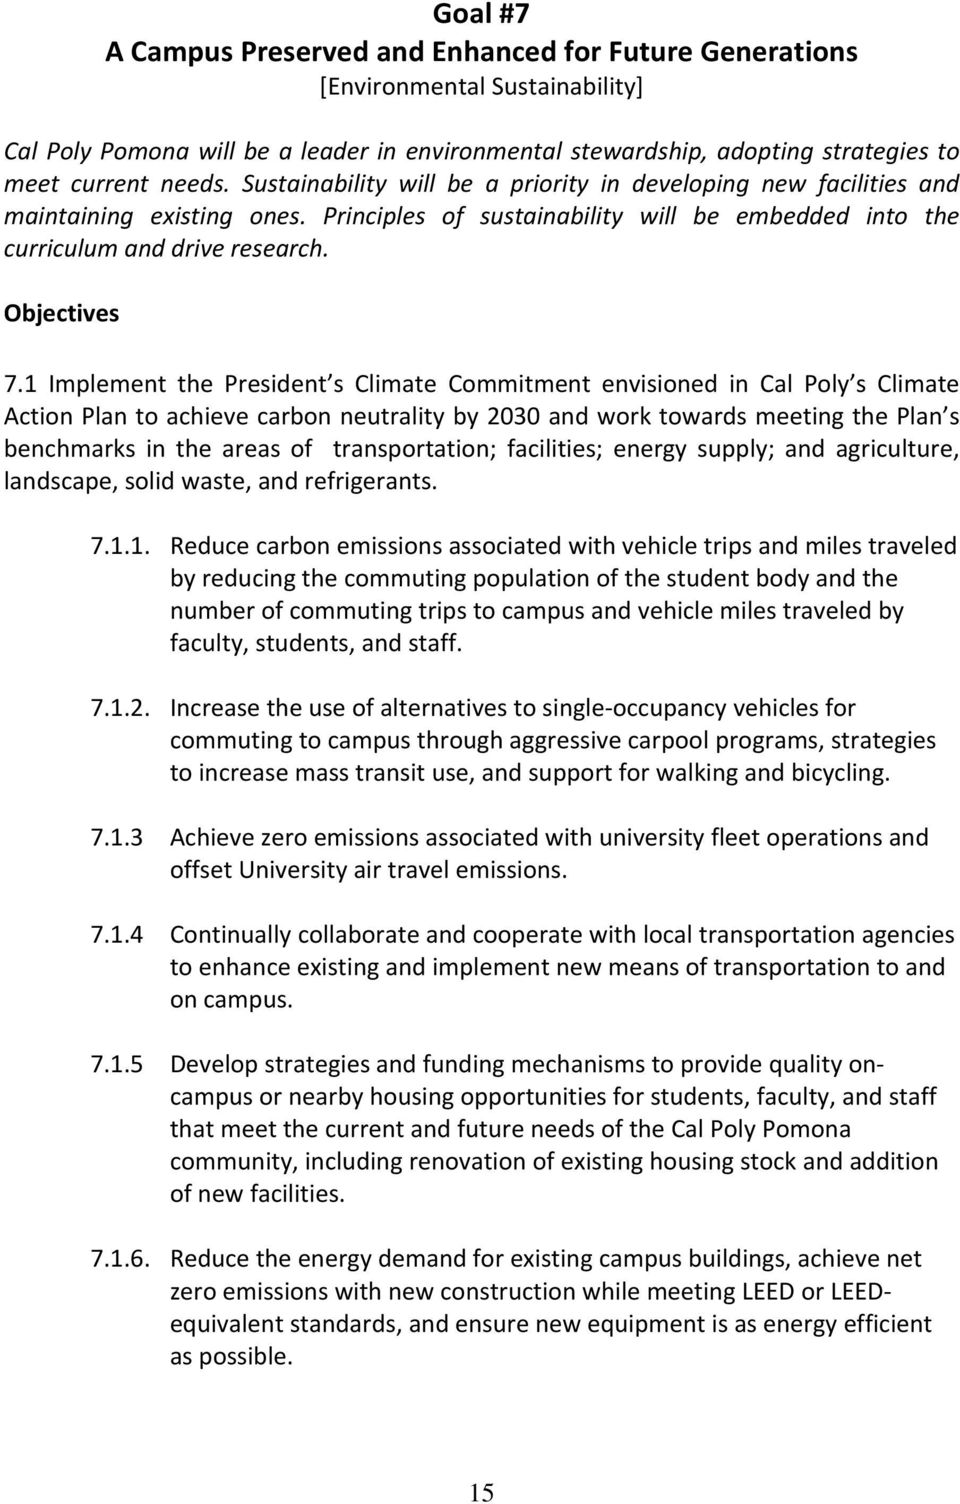 1 Implement the President s Climate Commitment envisioned in Cal Poly s Climate Action Plan to achieve carbon neutrality by 2030 and work towards meeting the Plan s benchmarks in the areas of